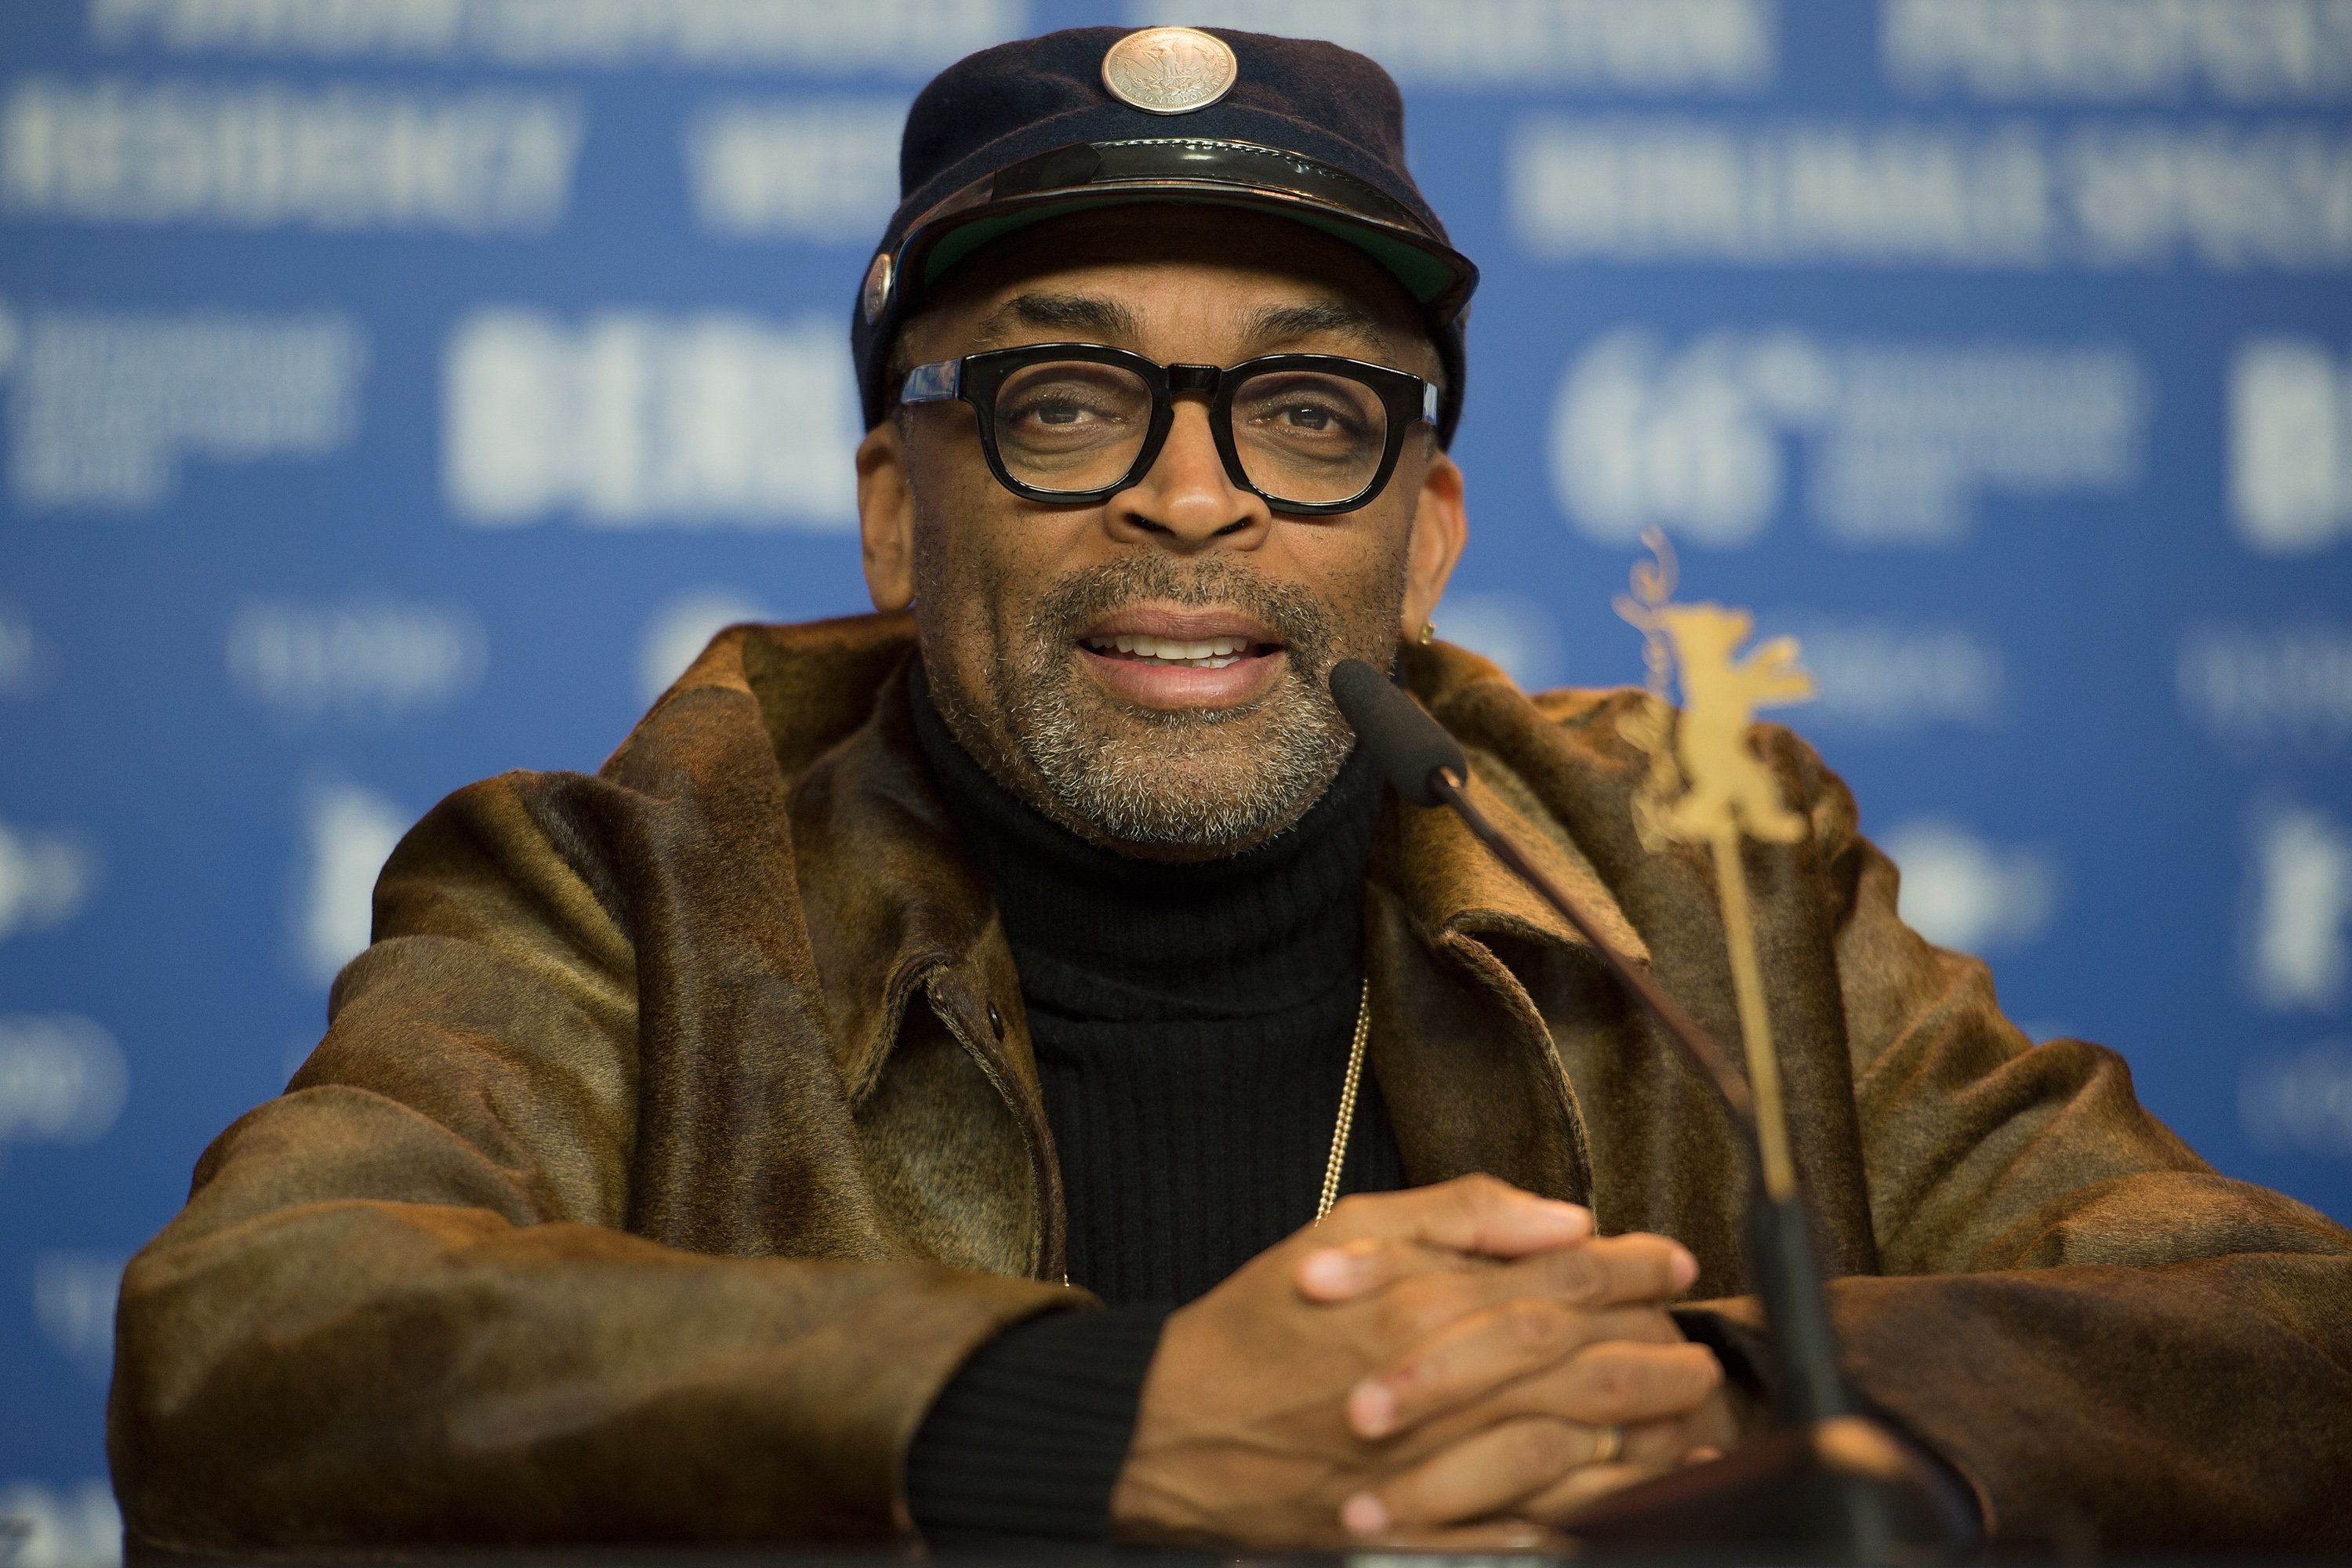 BERLIN, GERMANY - FEBRUARY 16:  Spike Lee attends the 'Chi-Raq' press conference during the 66th Berlinale International Film Festival Berlin at Grand Hyatt Hotel on February 16, 2016 in Berlin, Germany.  (Photo by Matthias Nareyek/WireImage)